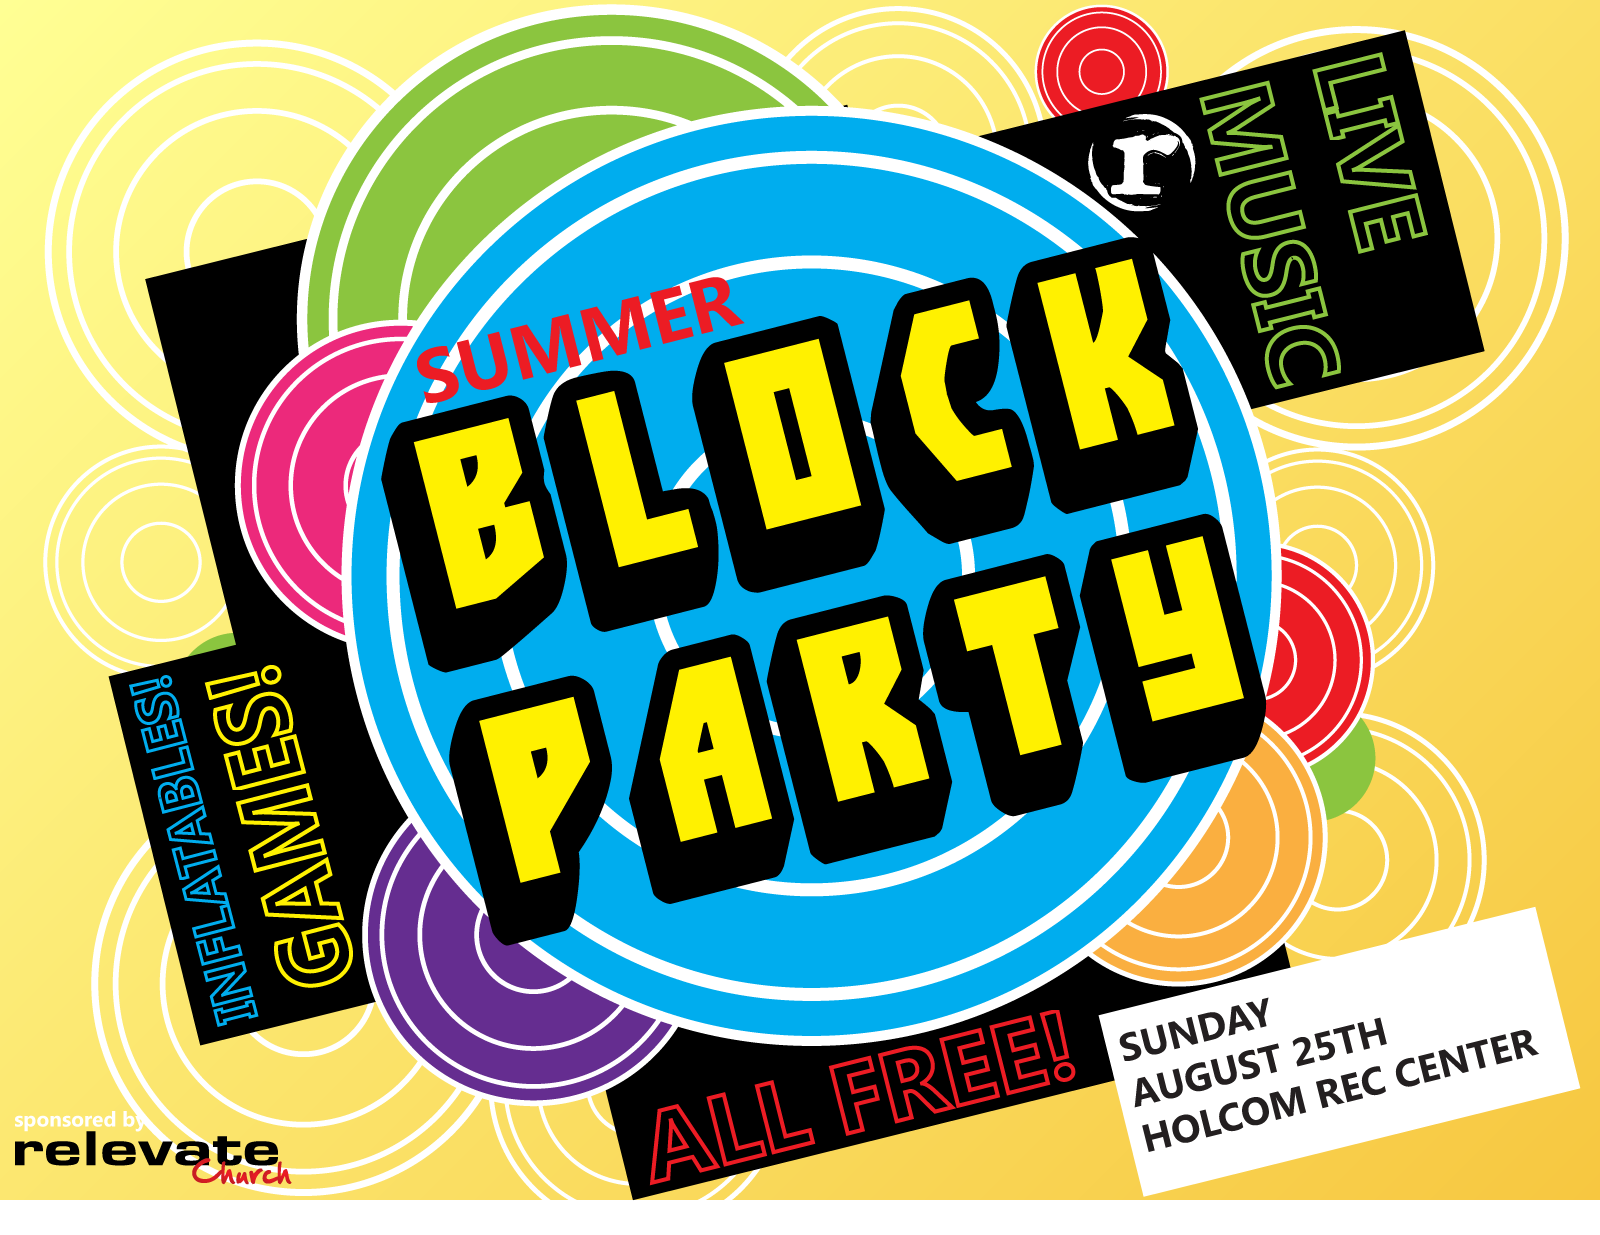 Block party flyer images copyright free clipart graphic black and white download Free Block Party Cliparts, Download Free Clip Art, Free Clip Art on ... graphic black and white download